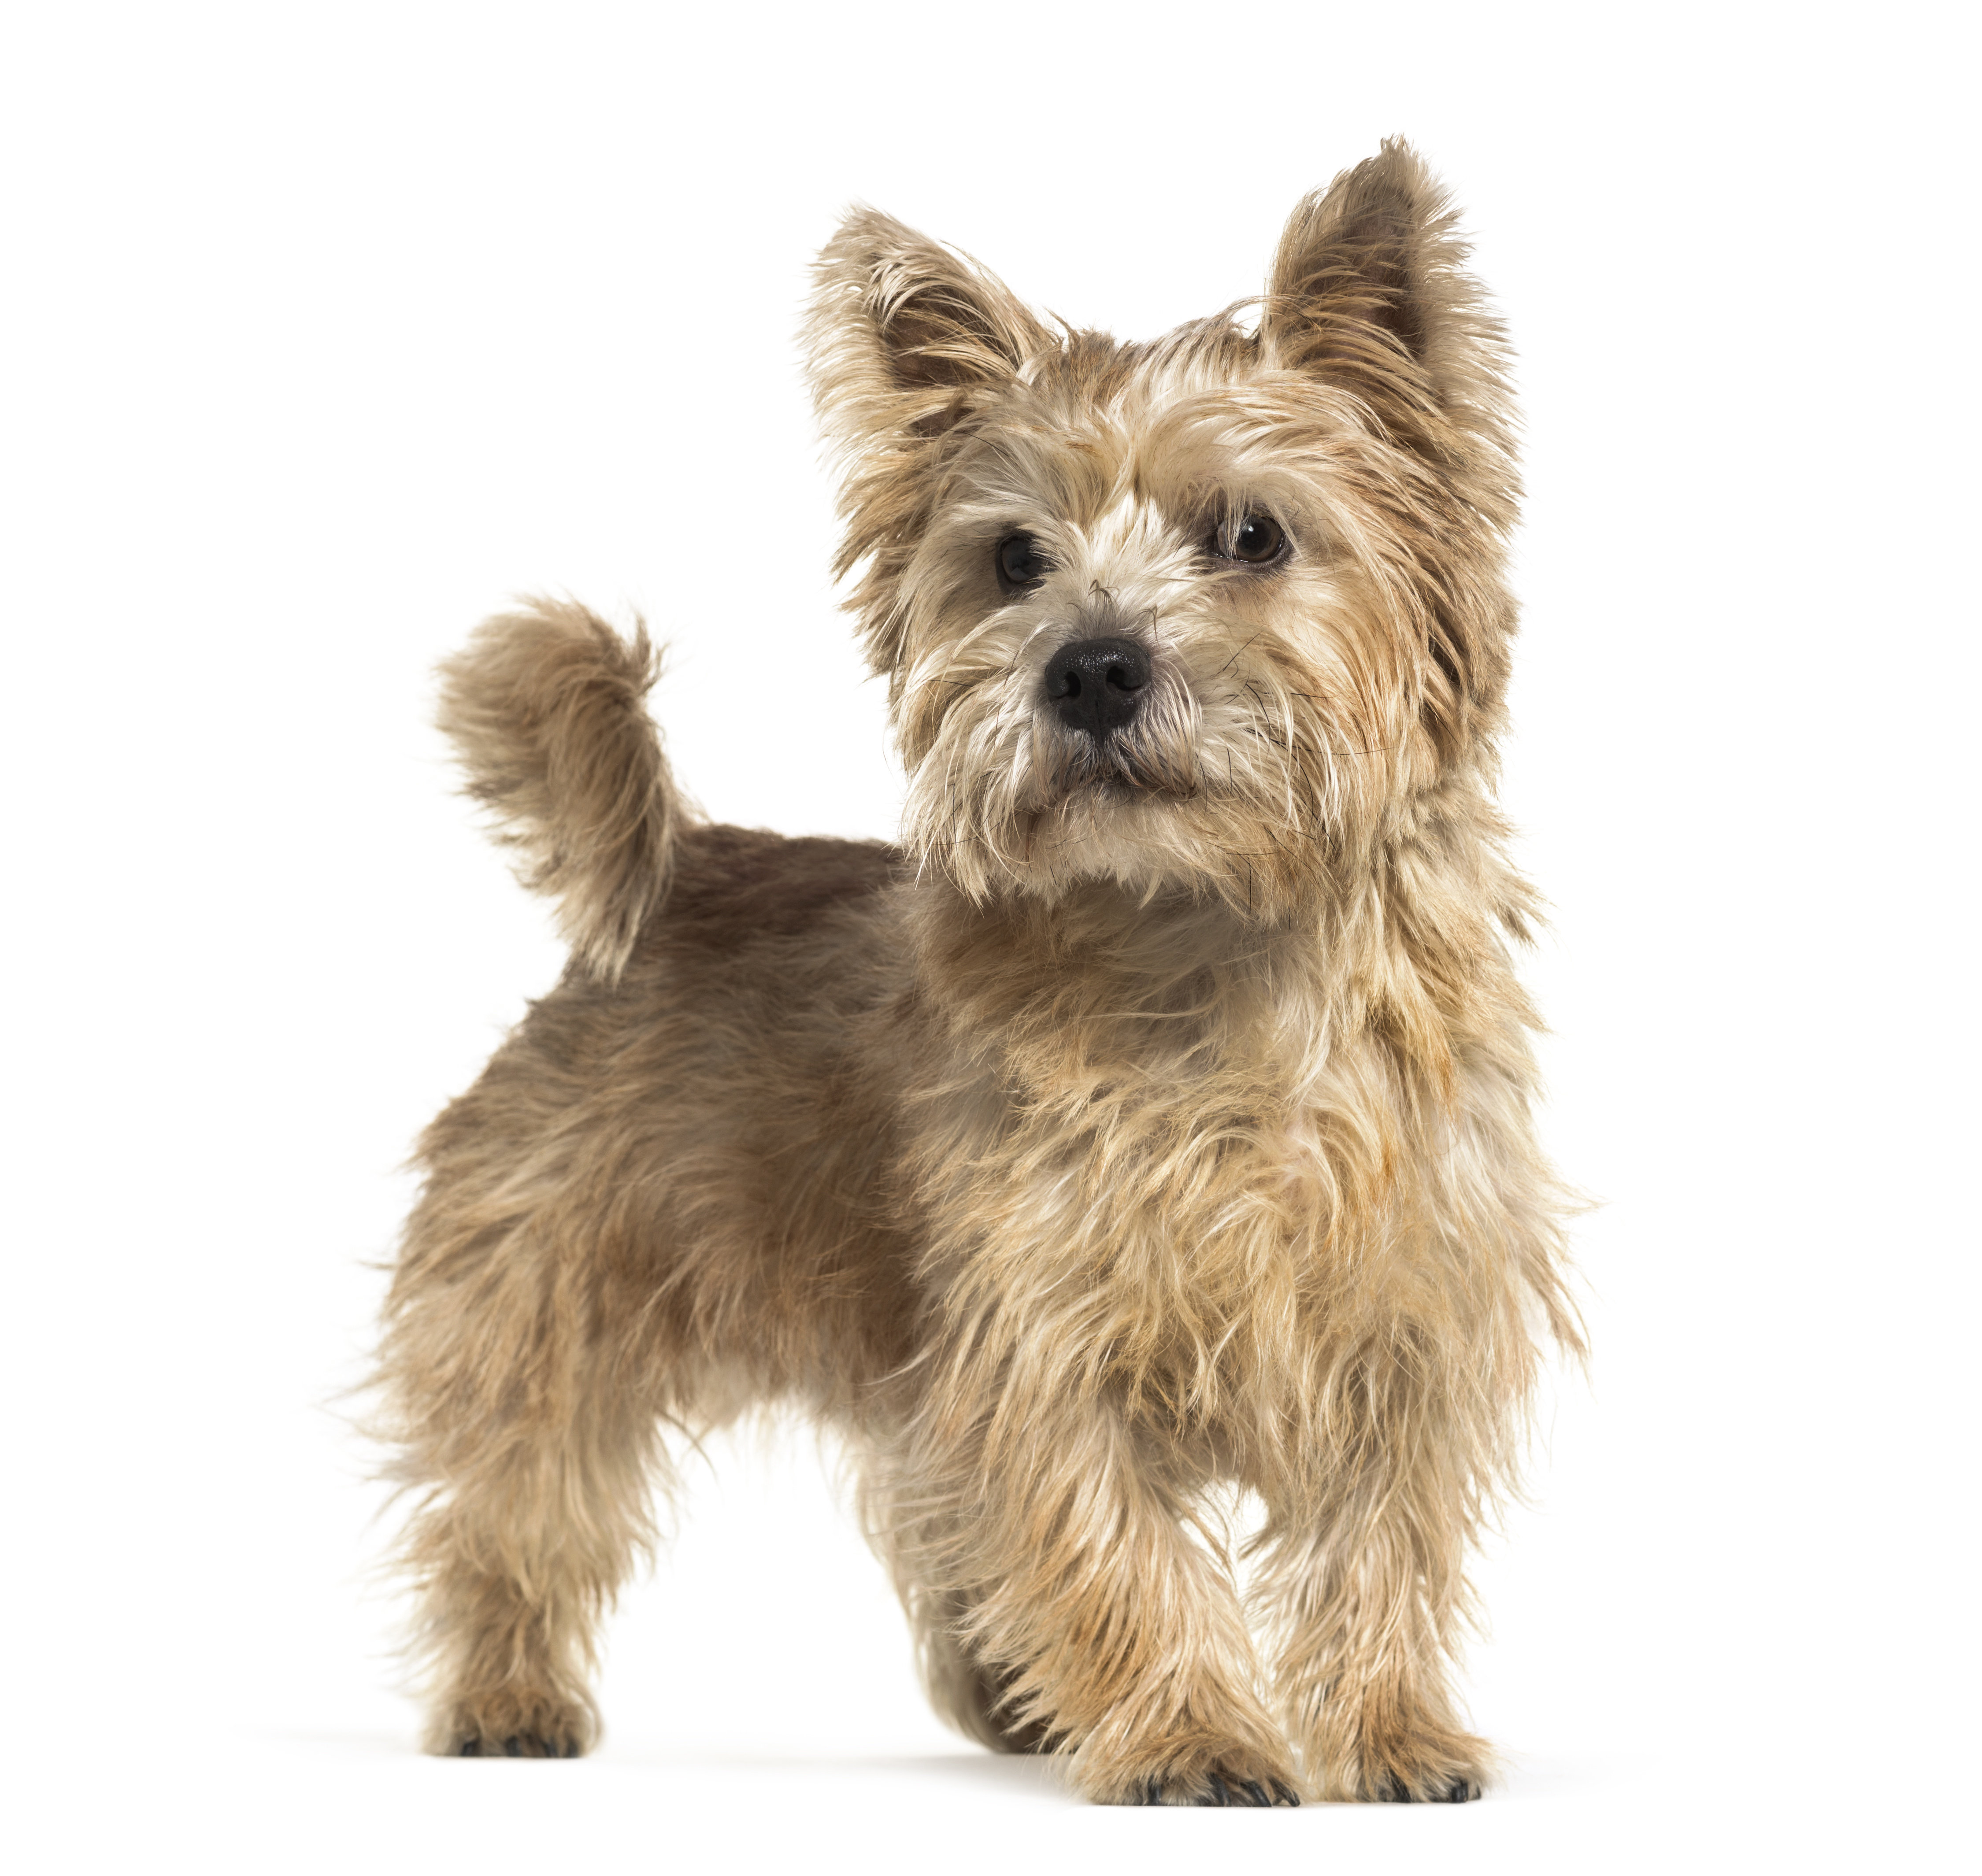 Norwich Terrier standing in front of a white background